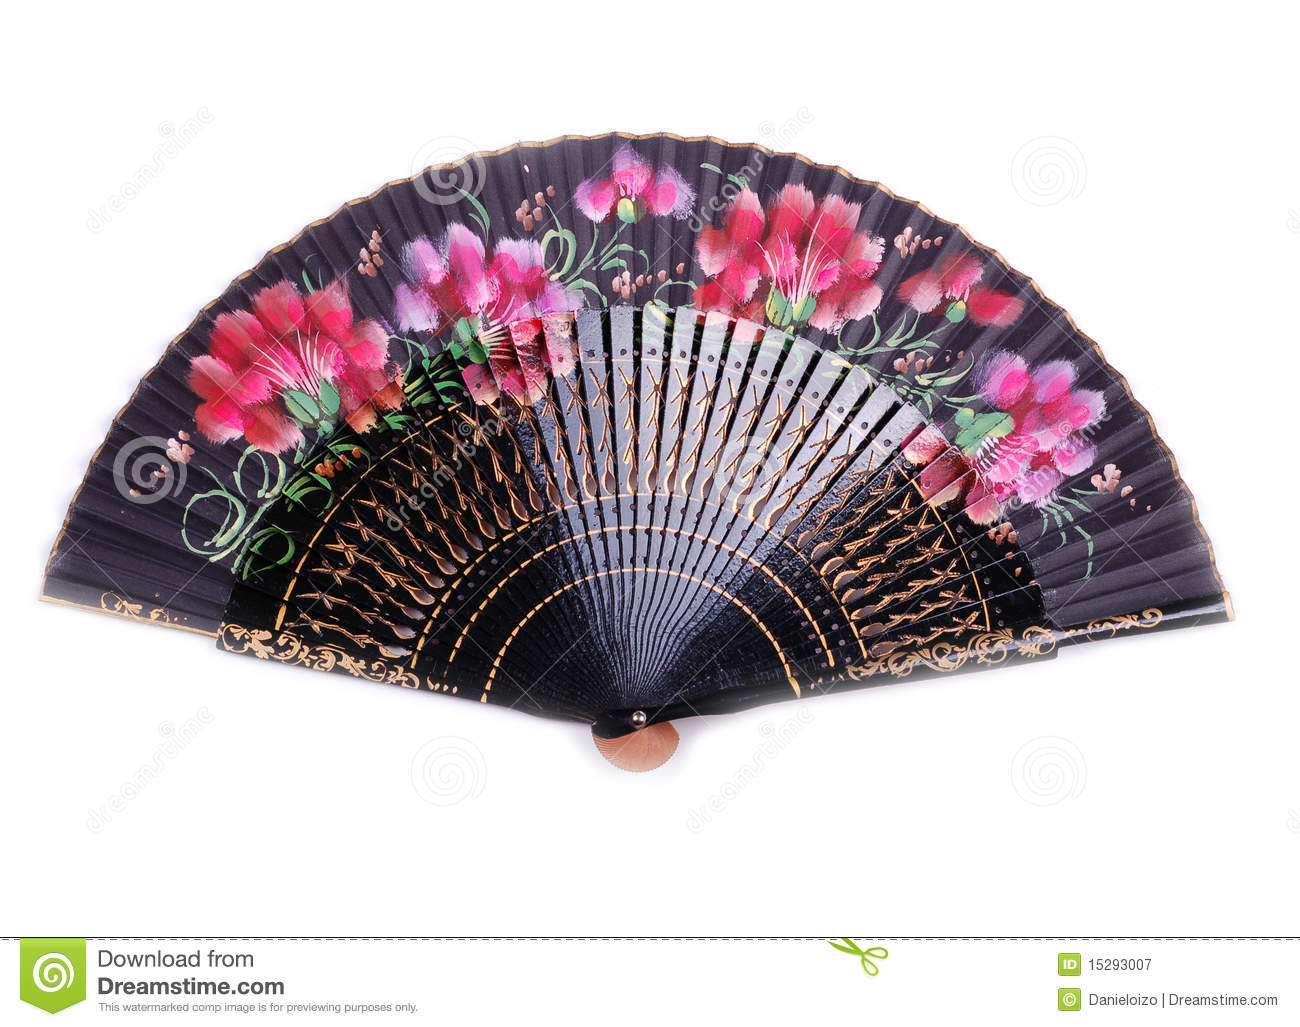 Stock Images Vector Japanese Background Cherry Blossom Image16716974 further 220676450465356850 further Silhouettes Of Dancers Of Japanese Theatre Kabuki And Silhouettes Of Geishas Vector 5057141 likewise Royalty Free Stock Photography Traditional Japanese Fan Image2414877 in addition Portrait Of An Actress In Kabuki Theater. on chinese fan pattern